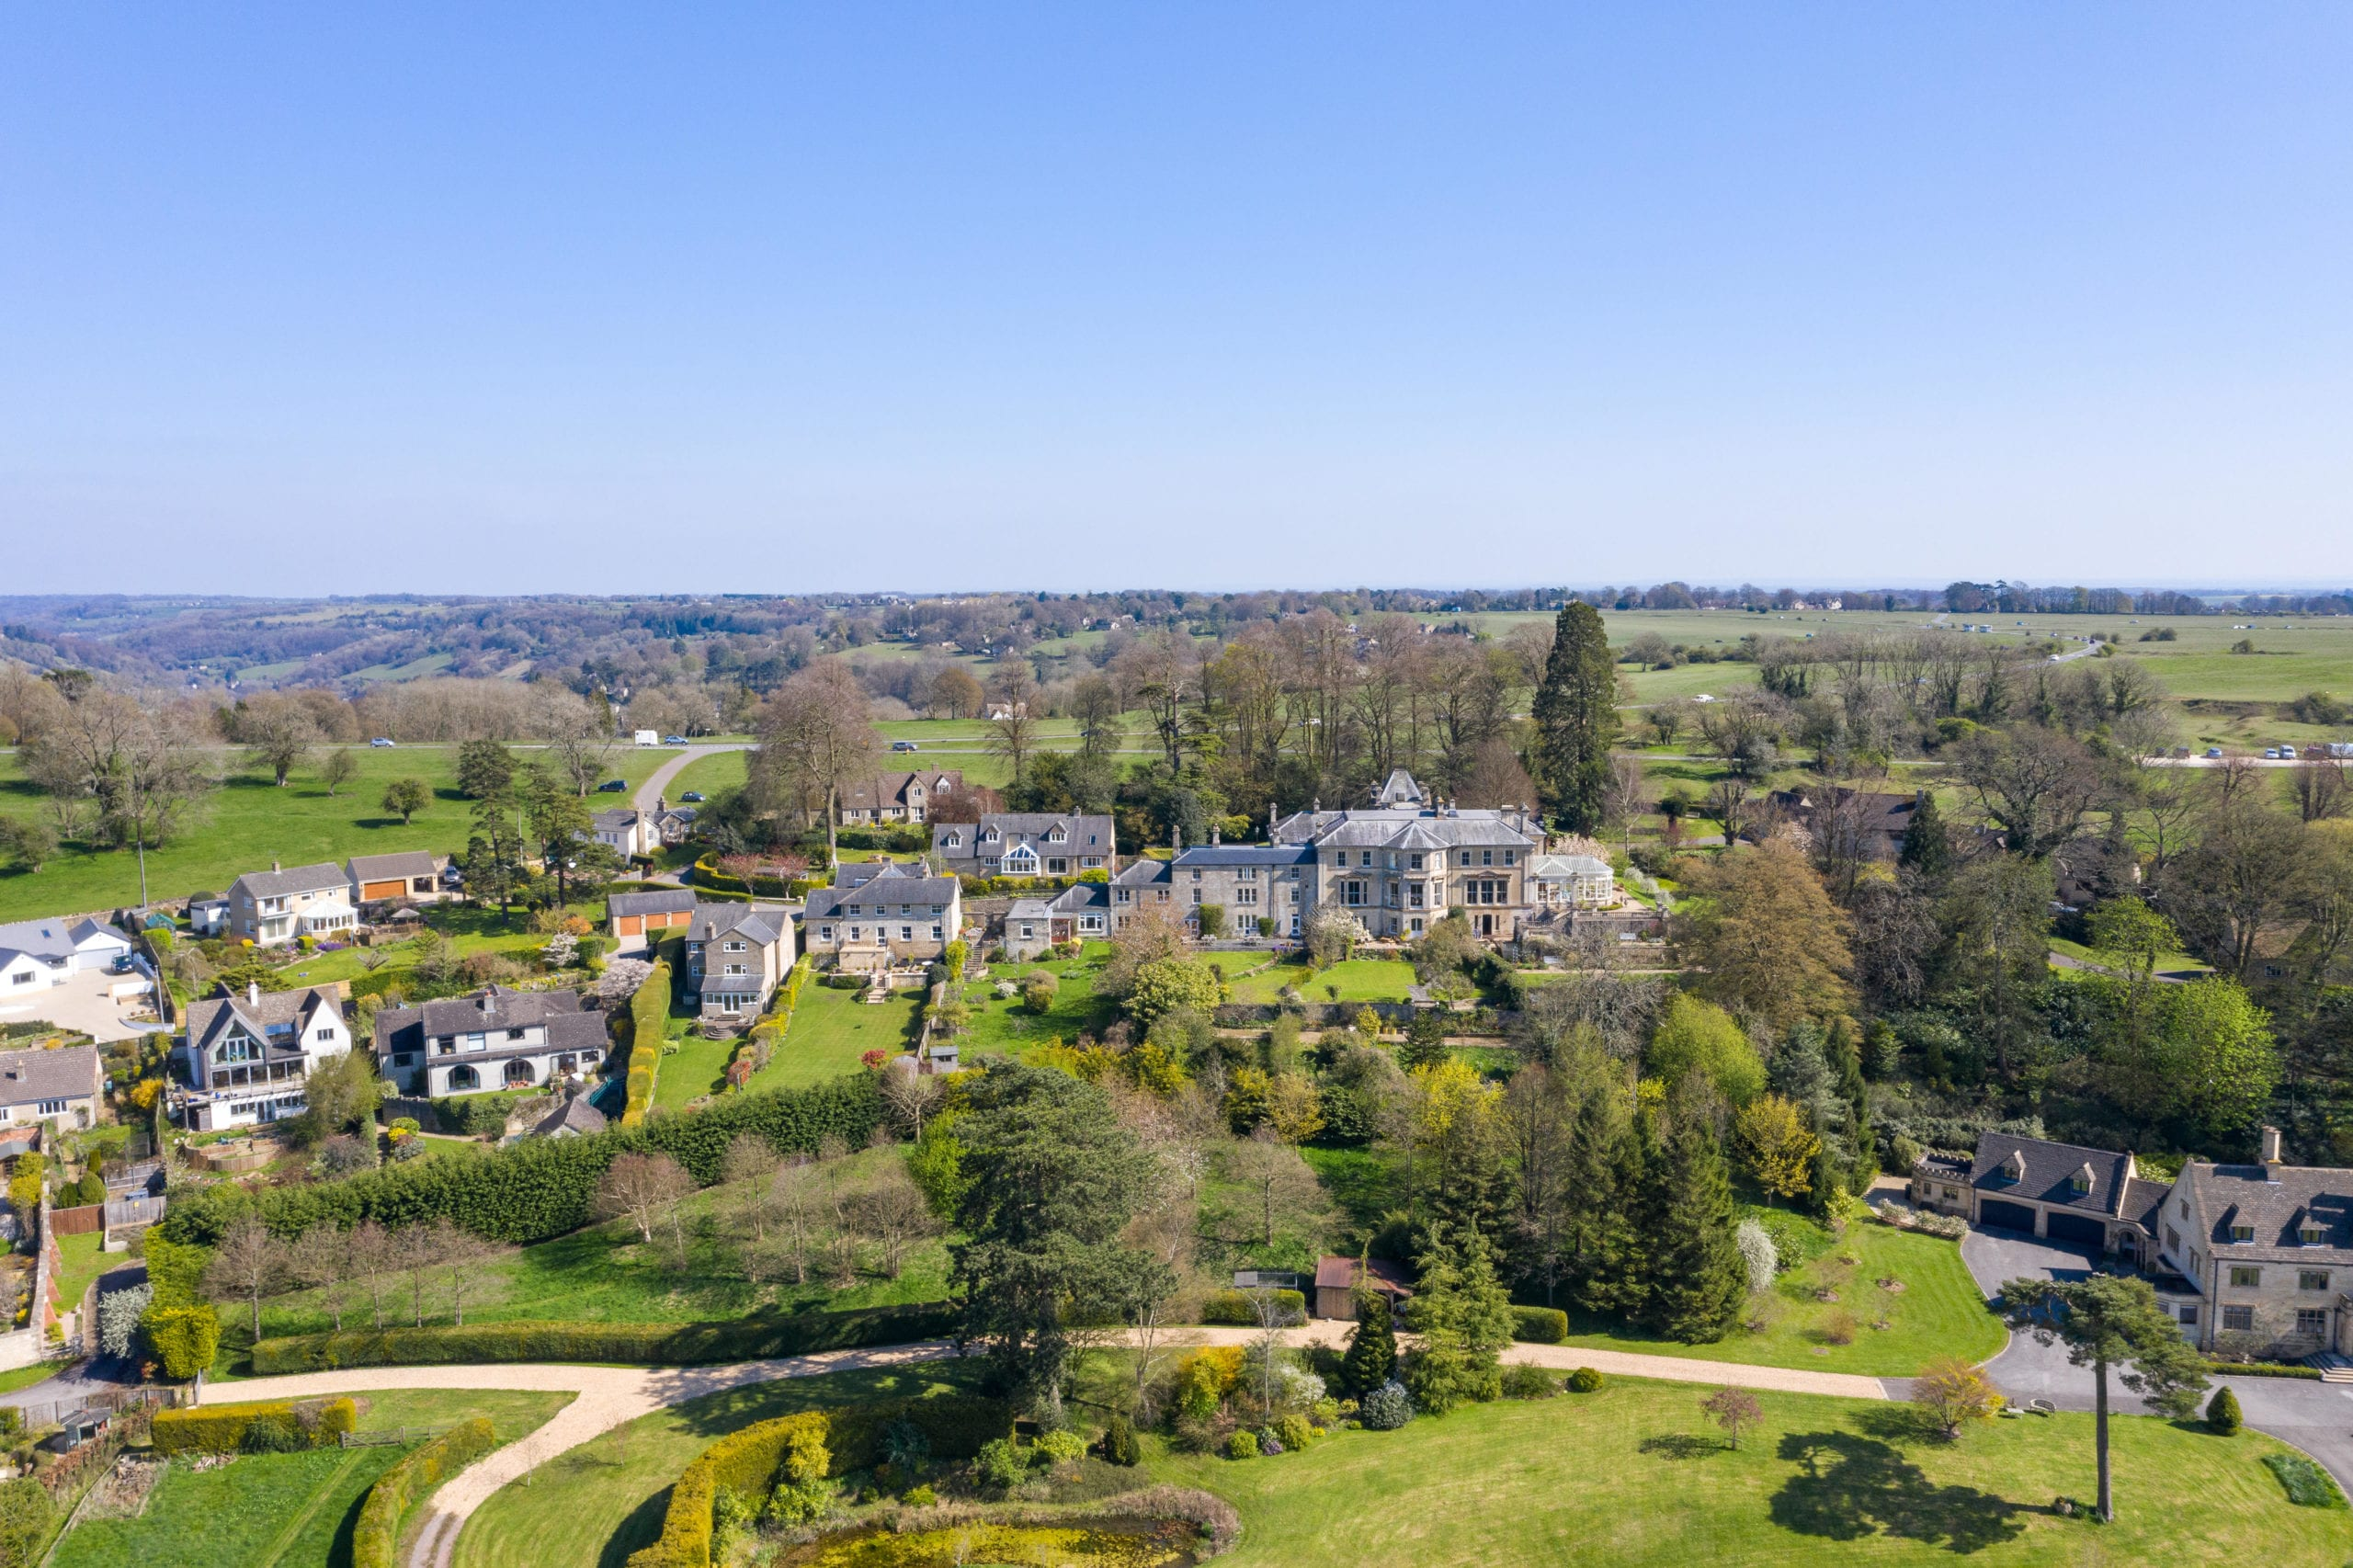 Drone photography – showcasing your property from above